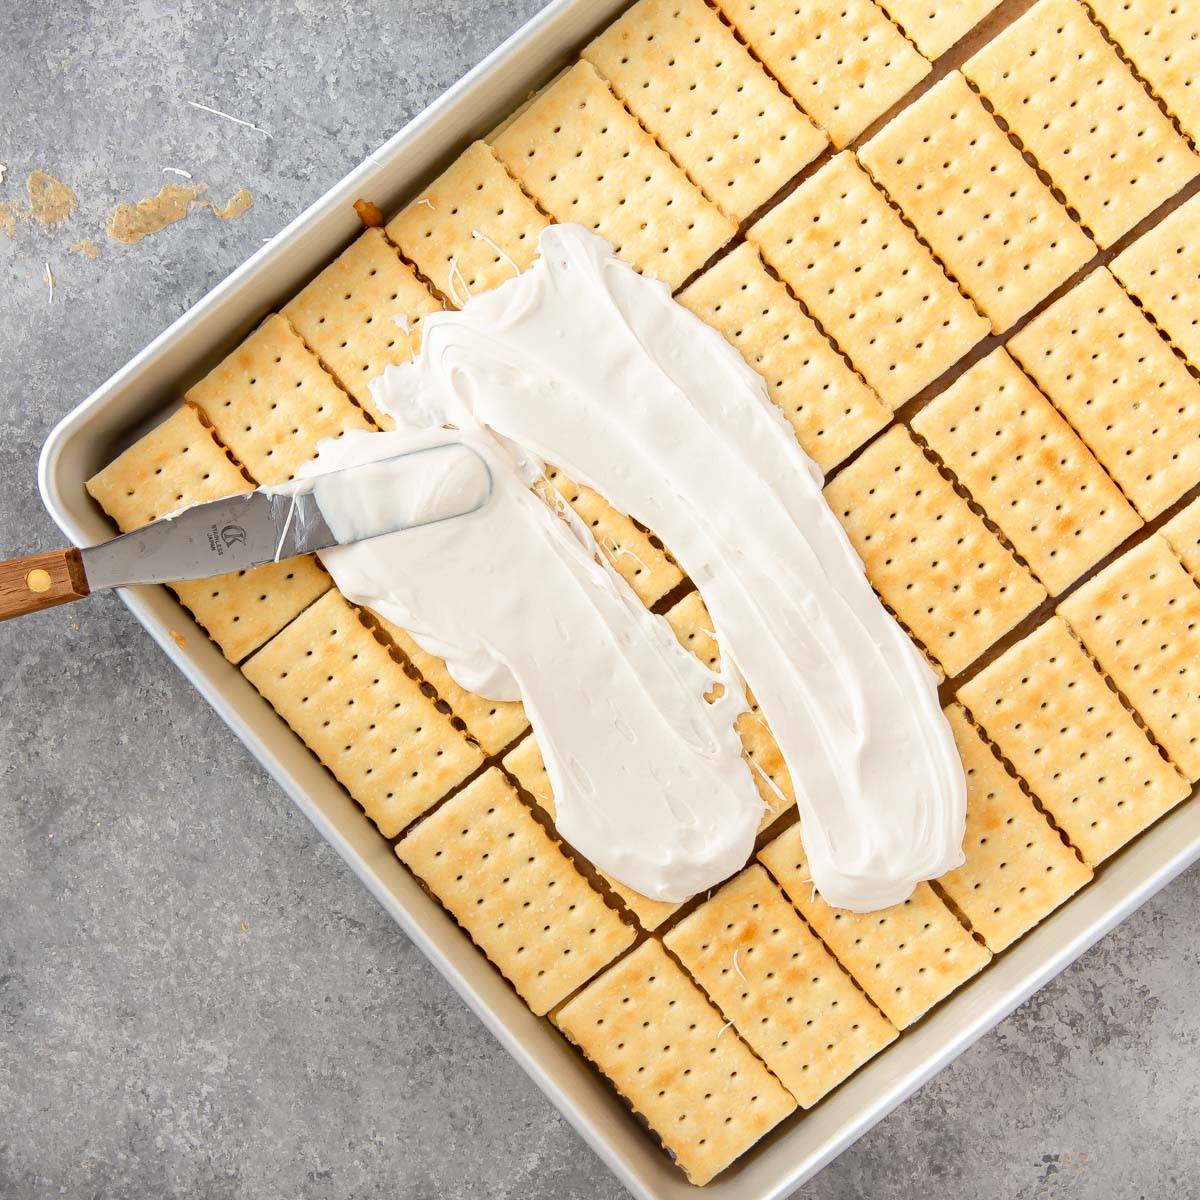 spreading melted white chocolate on toffee bars